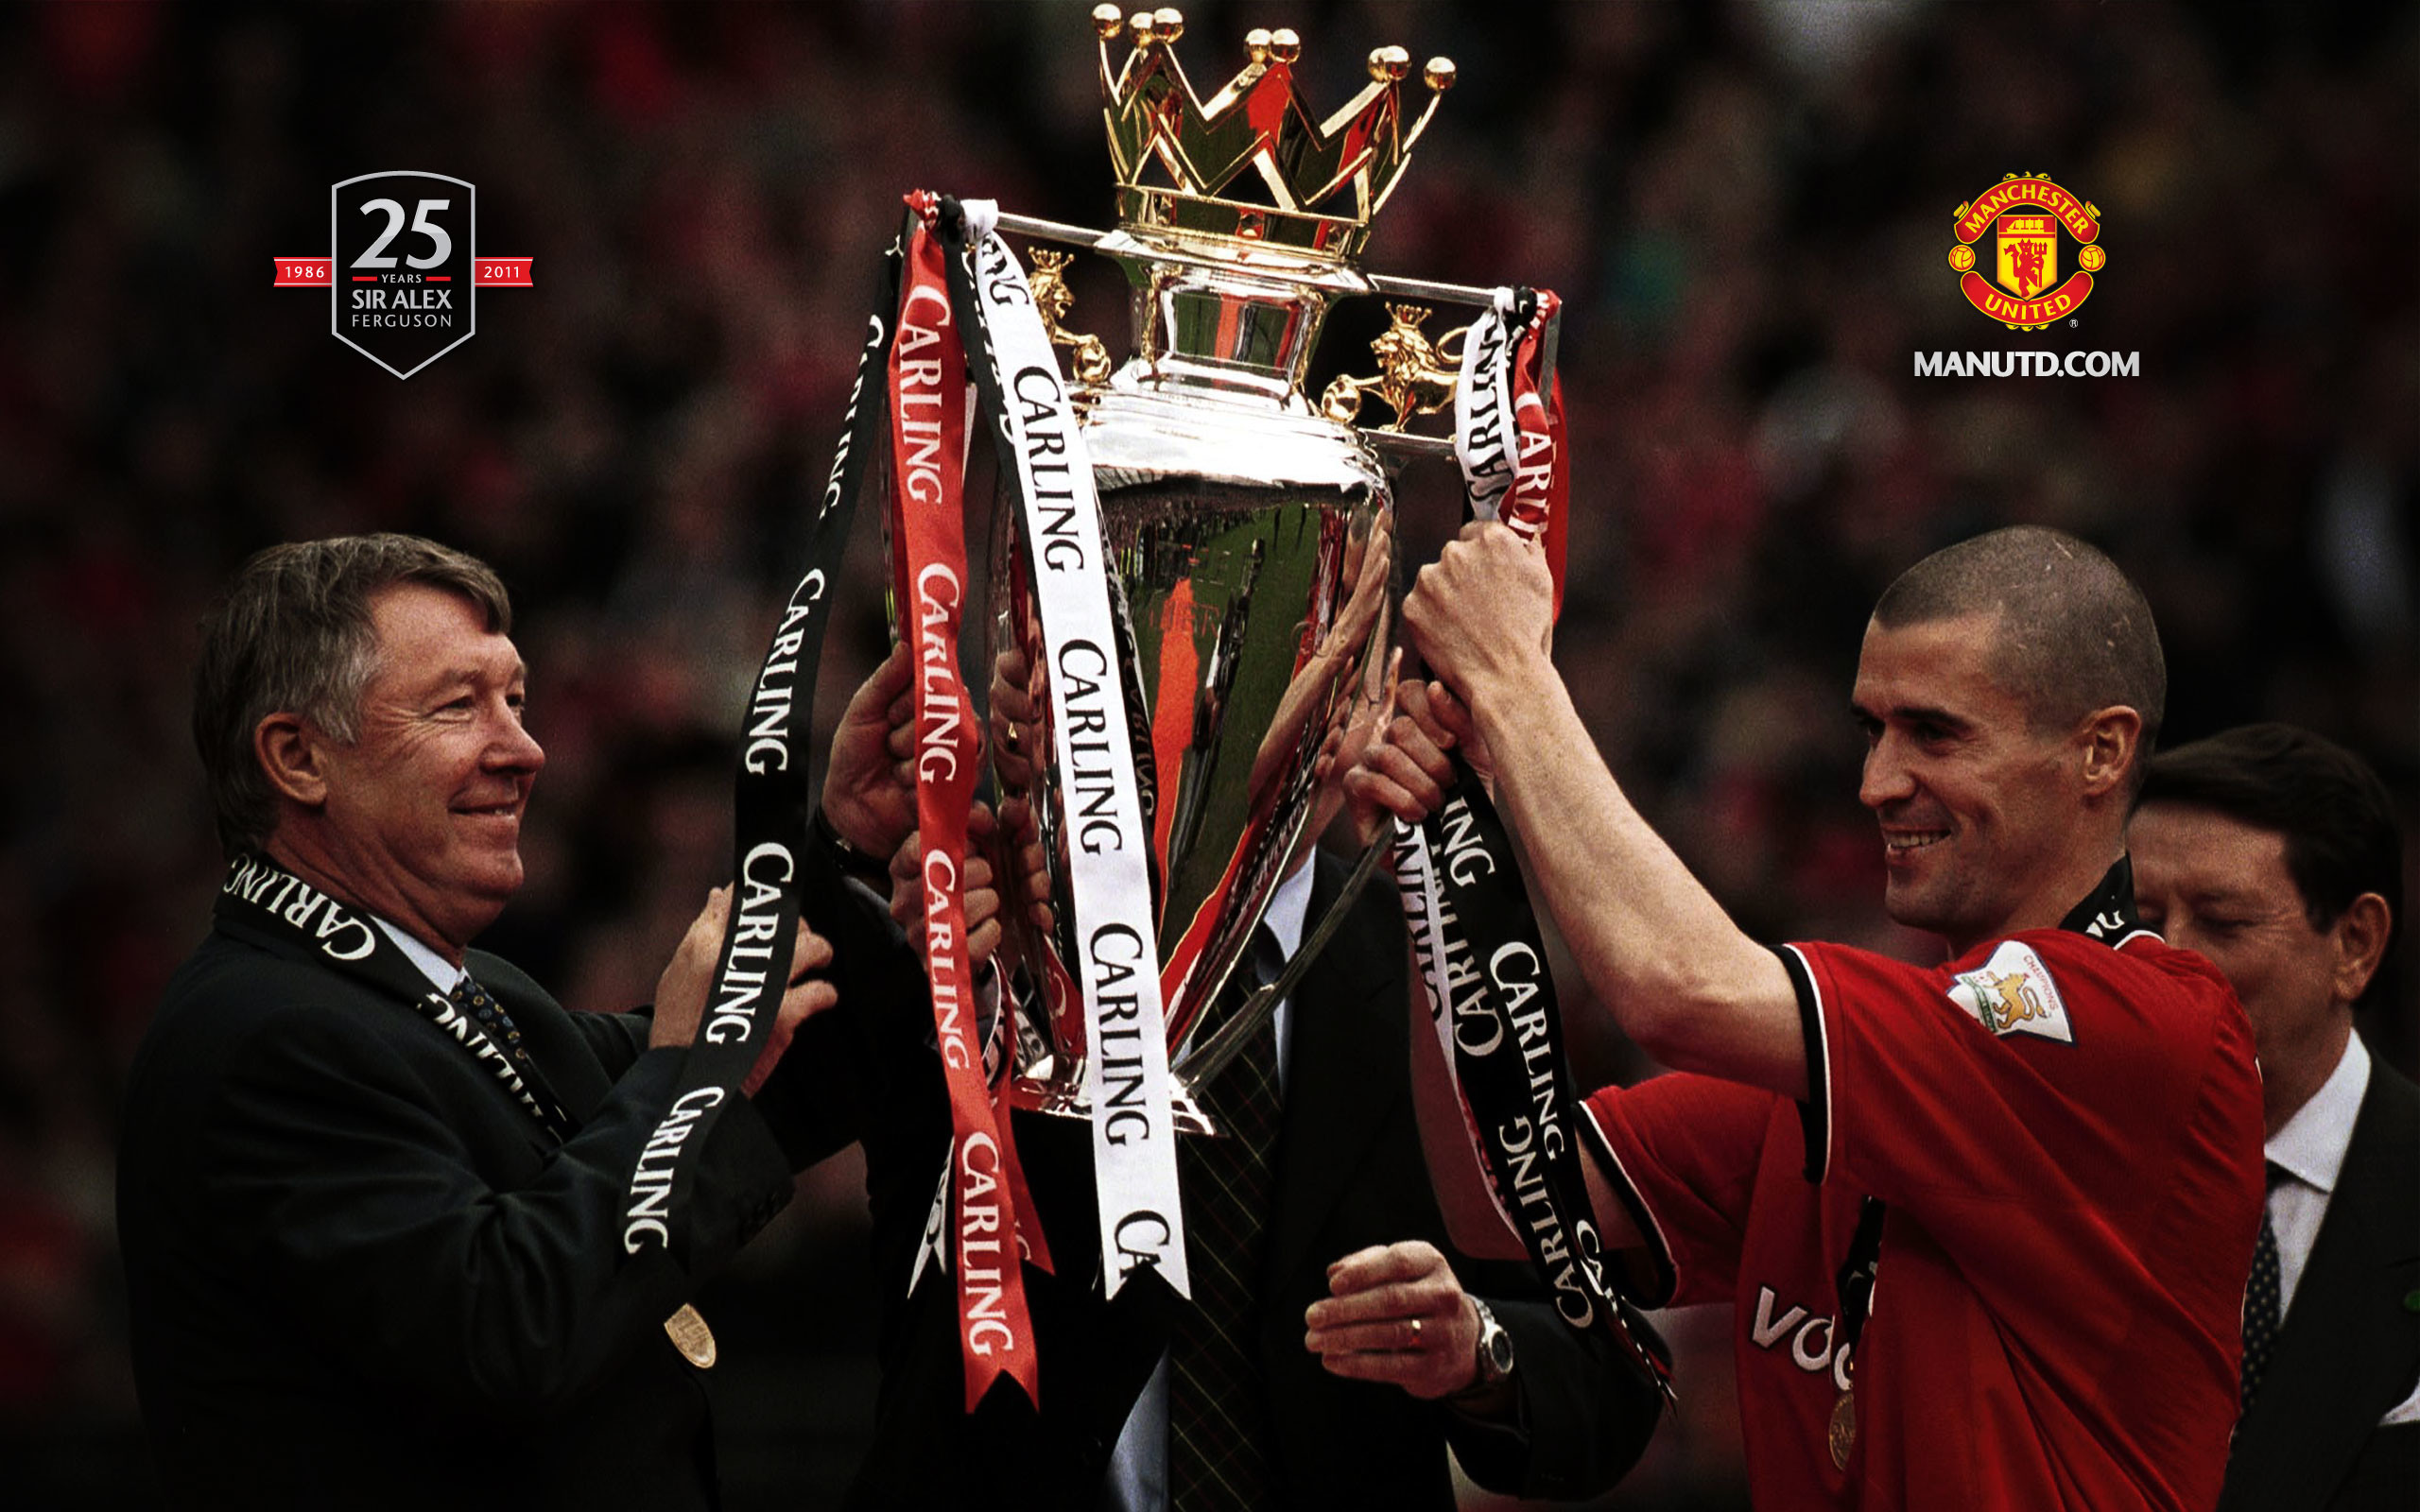 2560x1600 Sir Alex 25 Years. Advertisements